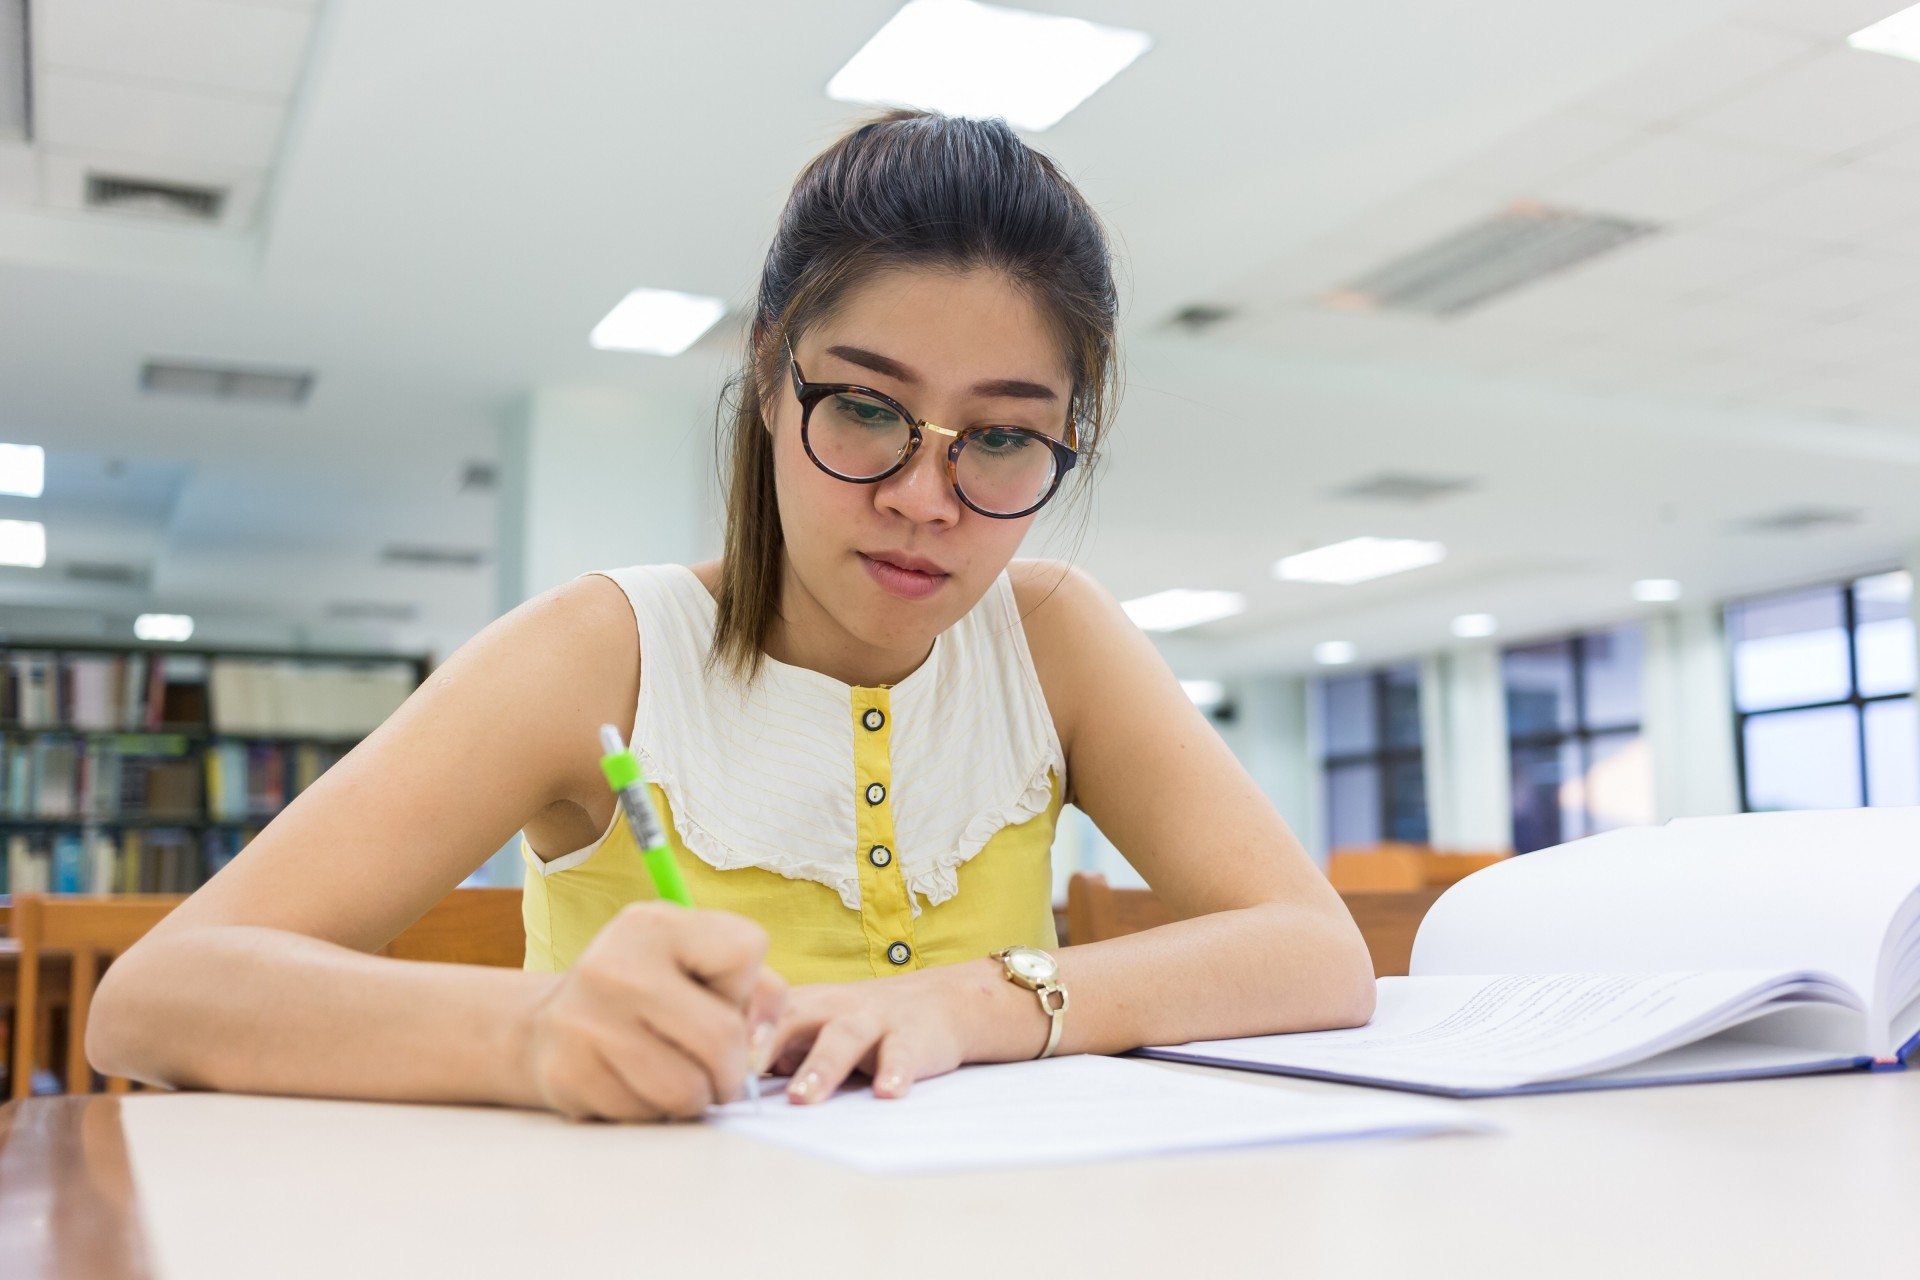 012 Essay Example Contests For High School Students Adobestock 91510247fit48002c3200ssl1 Staggering 2017 1920